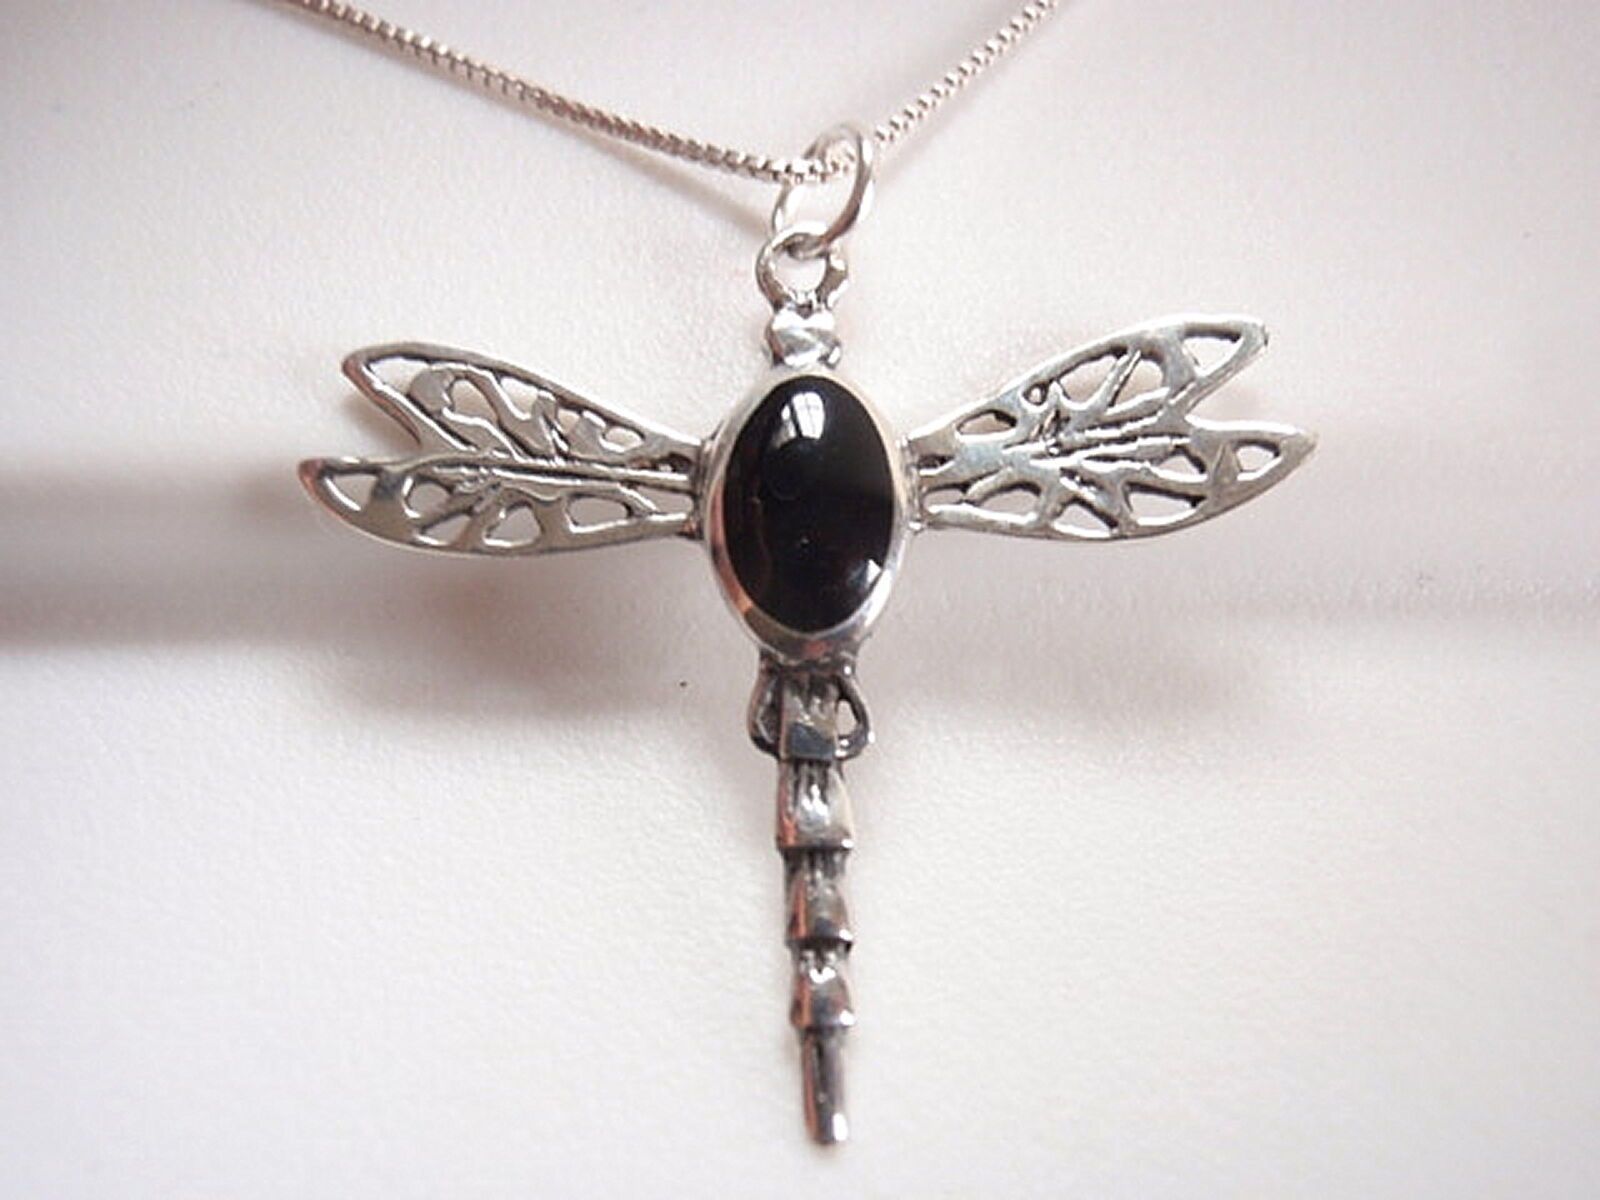 Black Onyx Dragonfly Necklace 925 Sterling Silver Corona Sun Jewelry - $69.29